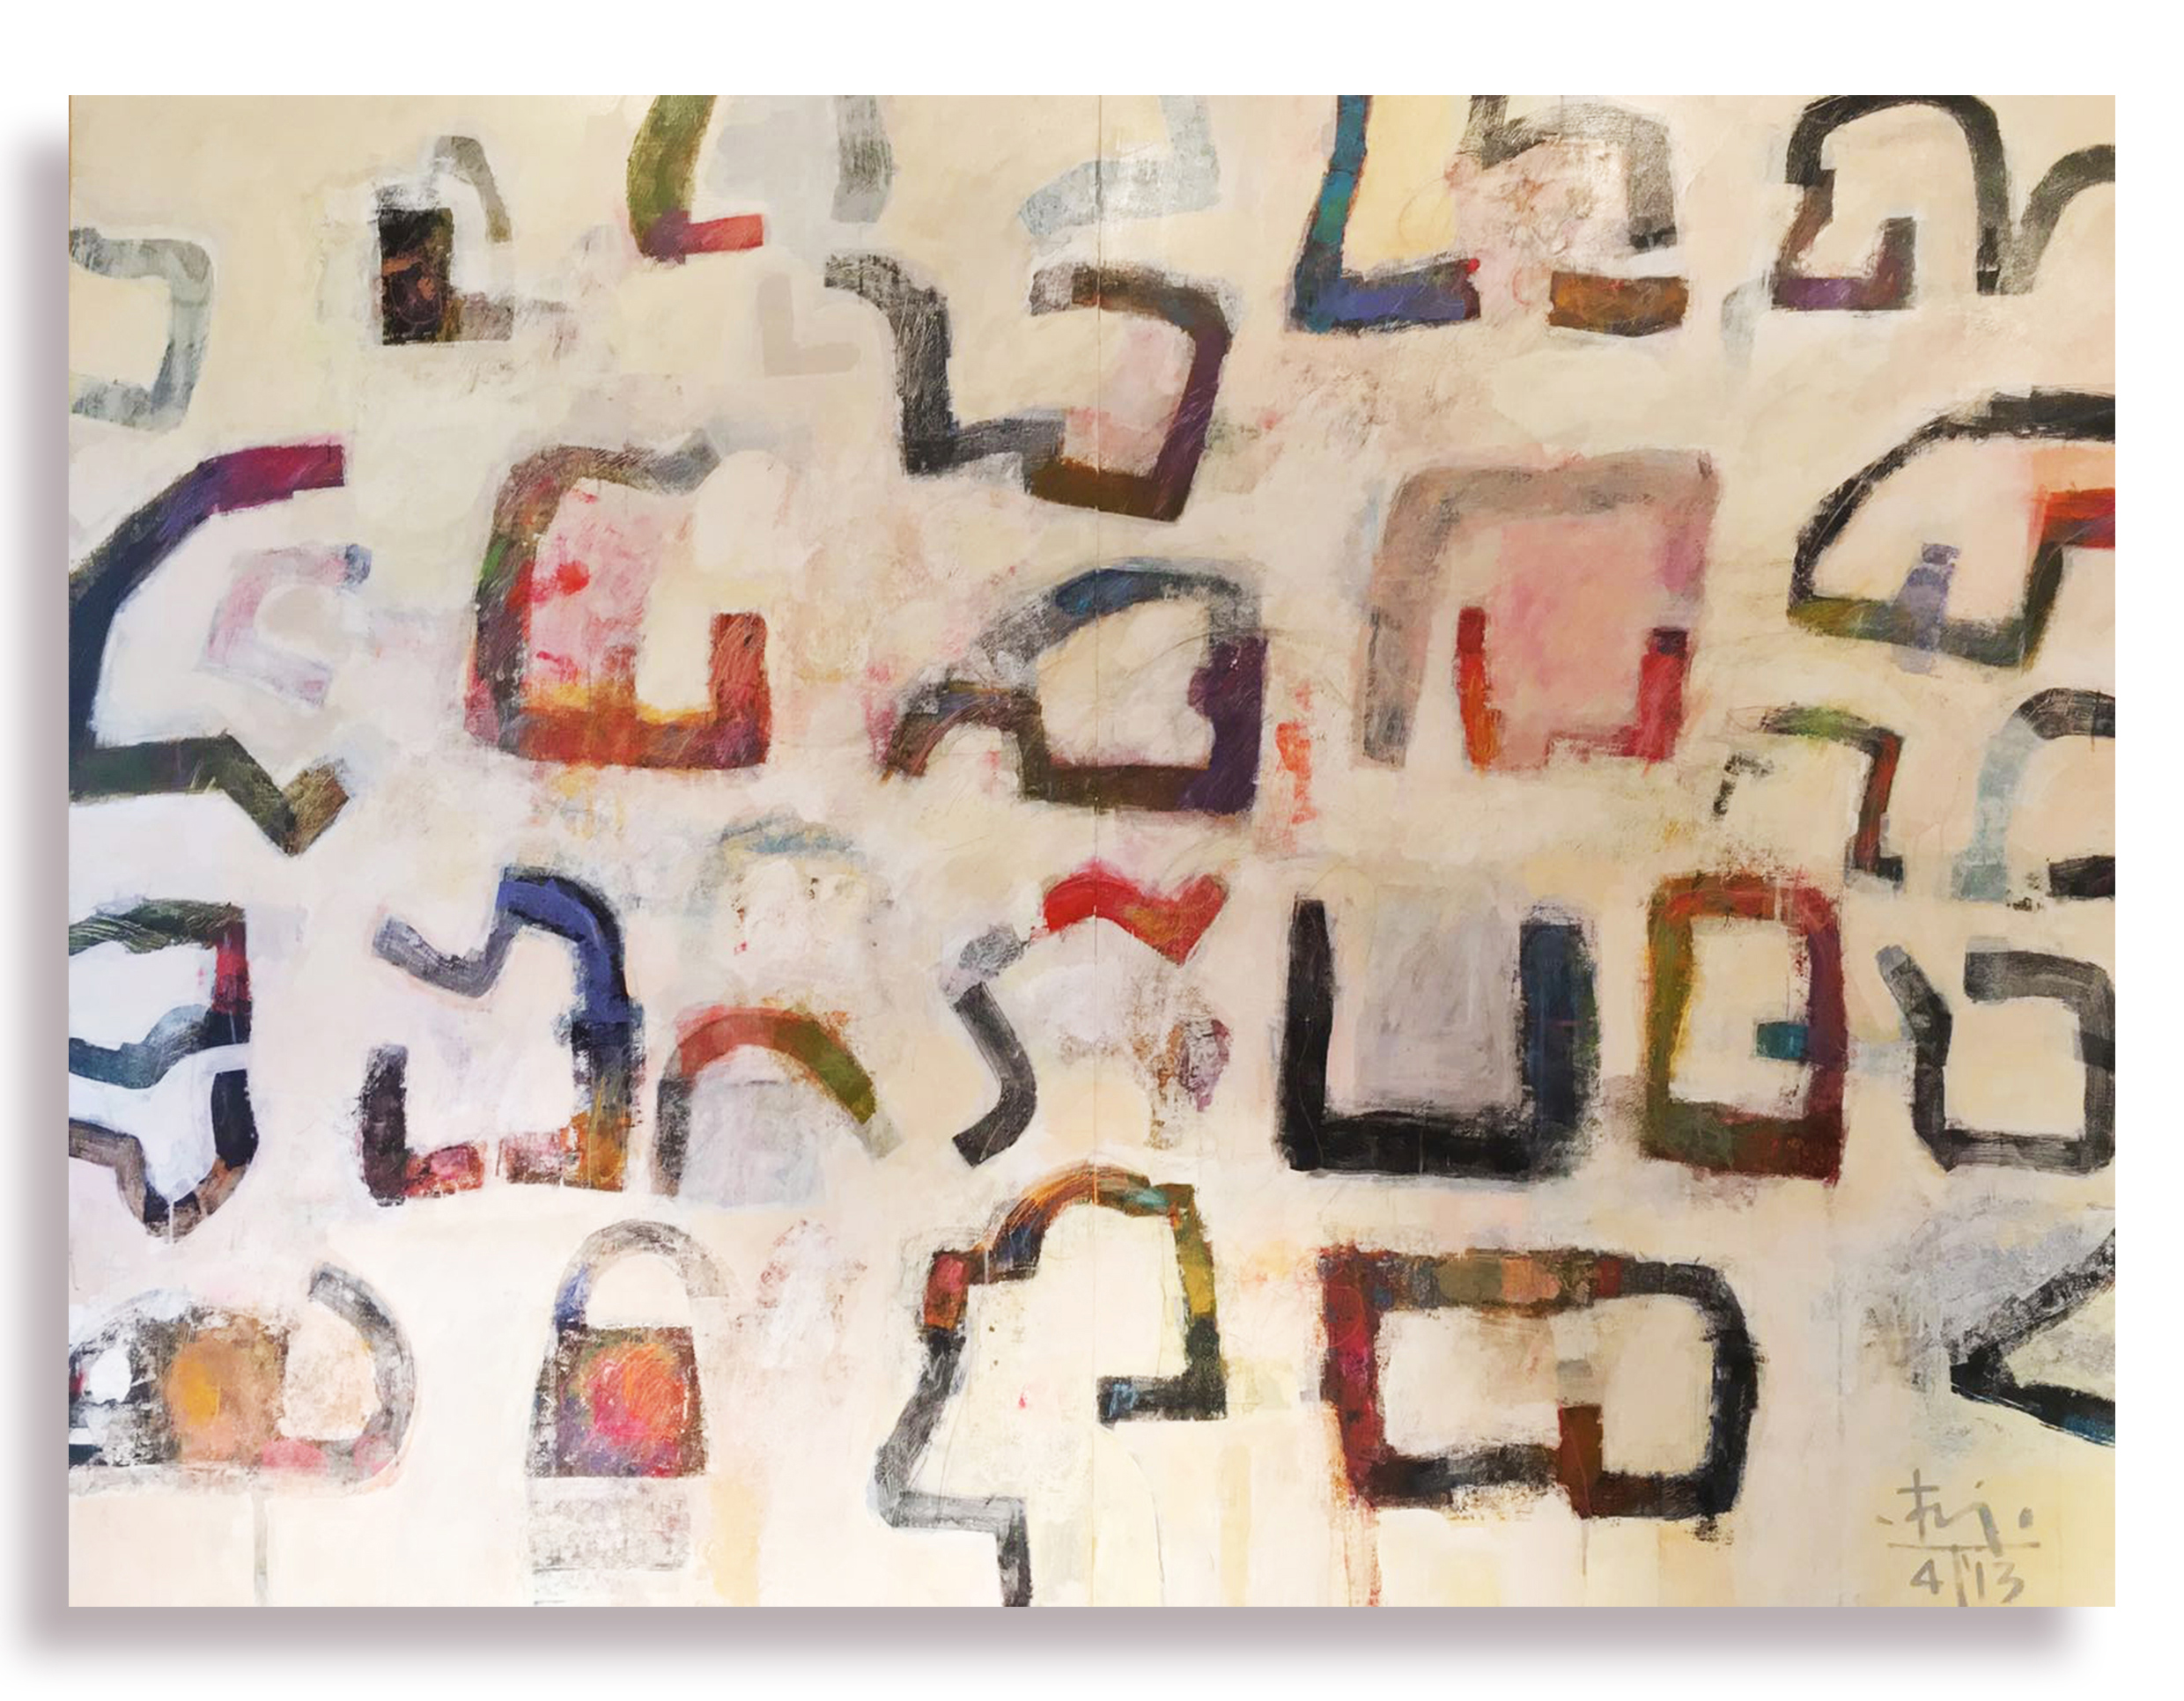 Homage to Chillida, 2013, Mixed media on wood panel, 259cm x 167cm.jpg